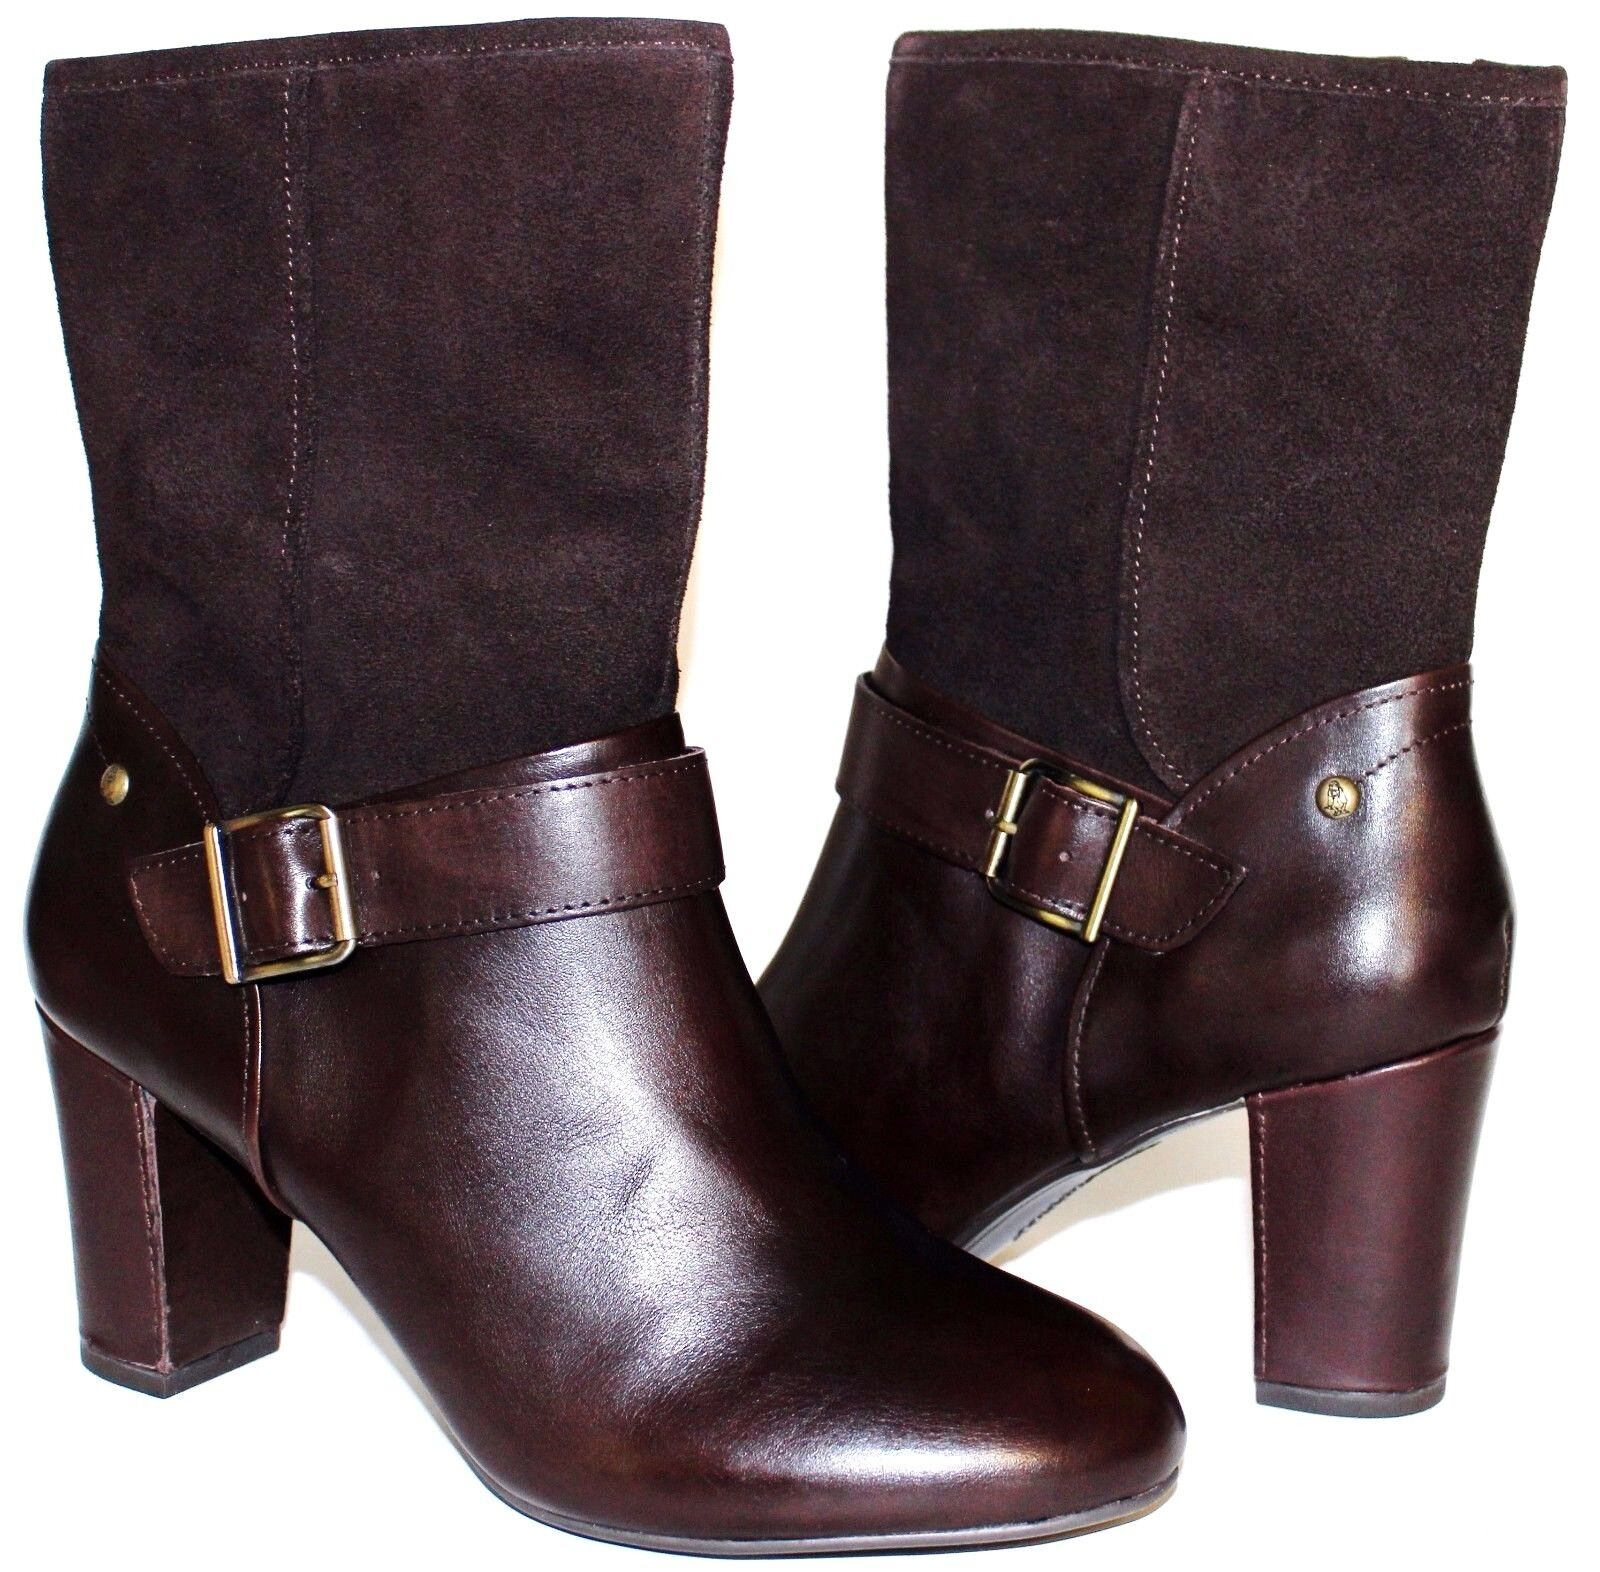 HUSH PUPPIES Waterproof Brown Premium Leather 3  Heel Zip Boot 9.5 W NEW  L@@K